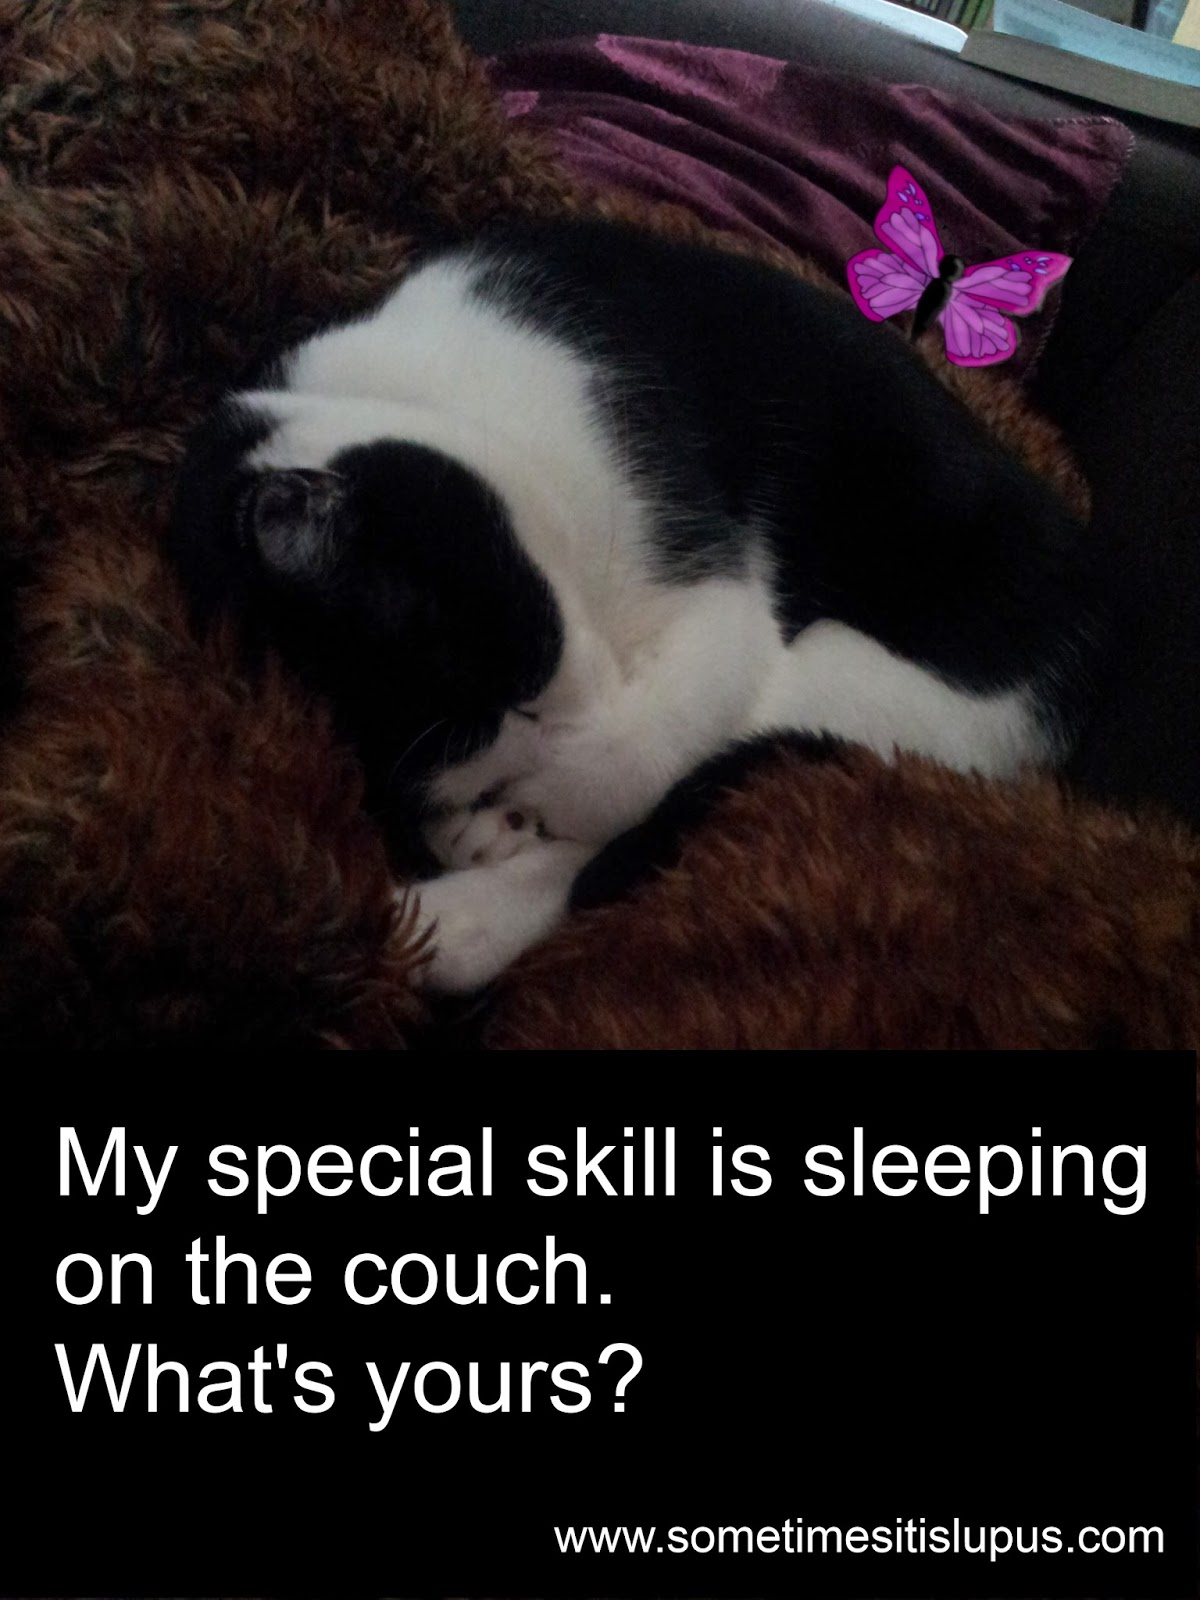 Image: sleeping cat. Text: My special skill is sleeping on the couch. What's yours?